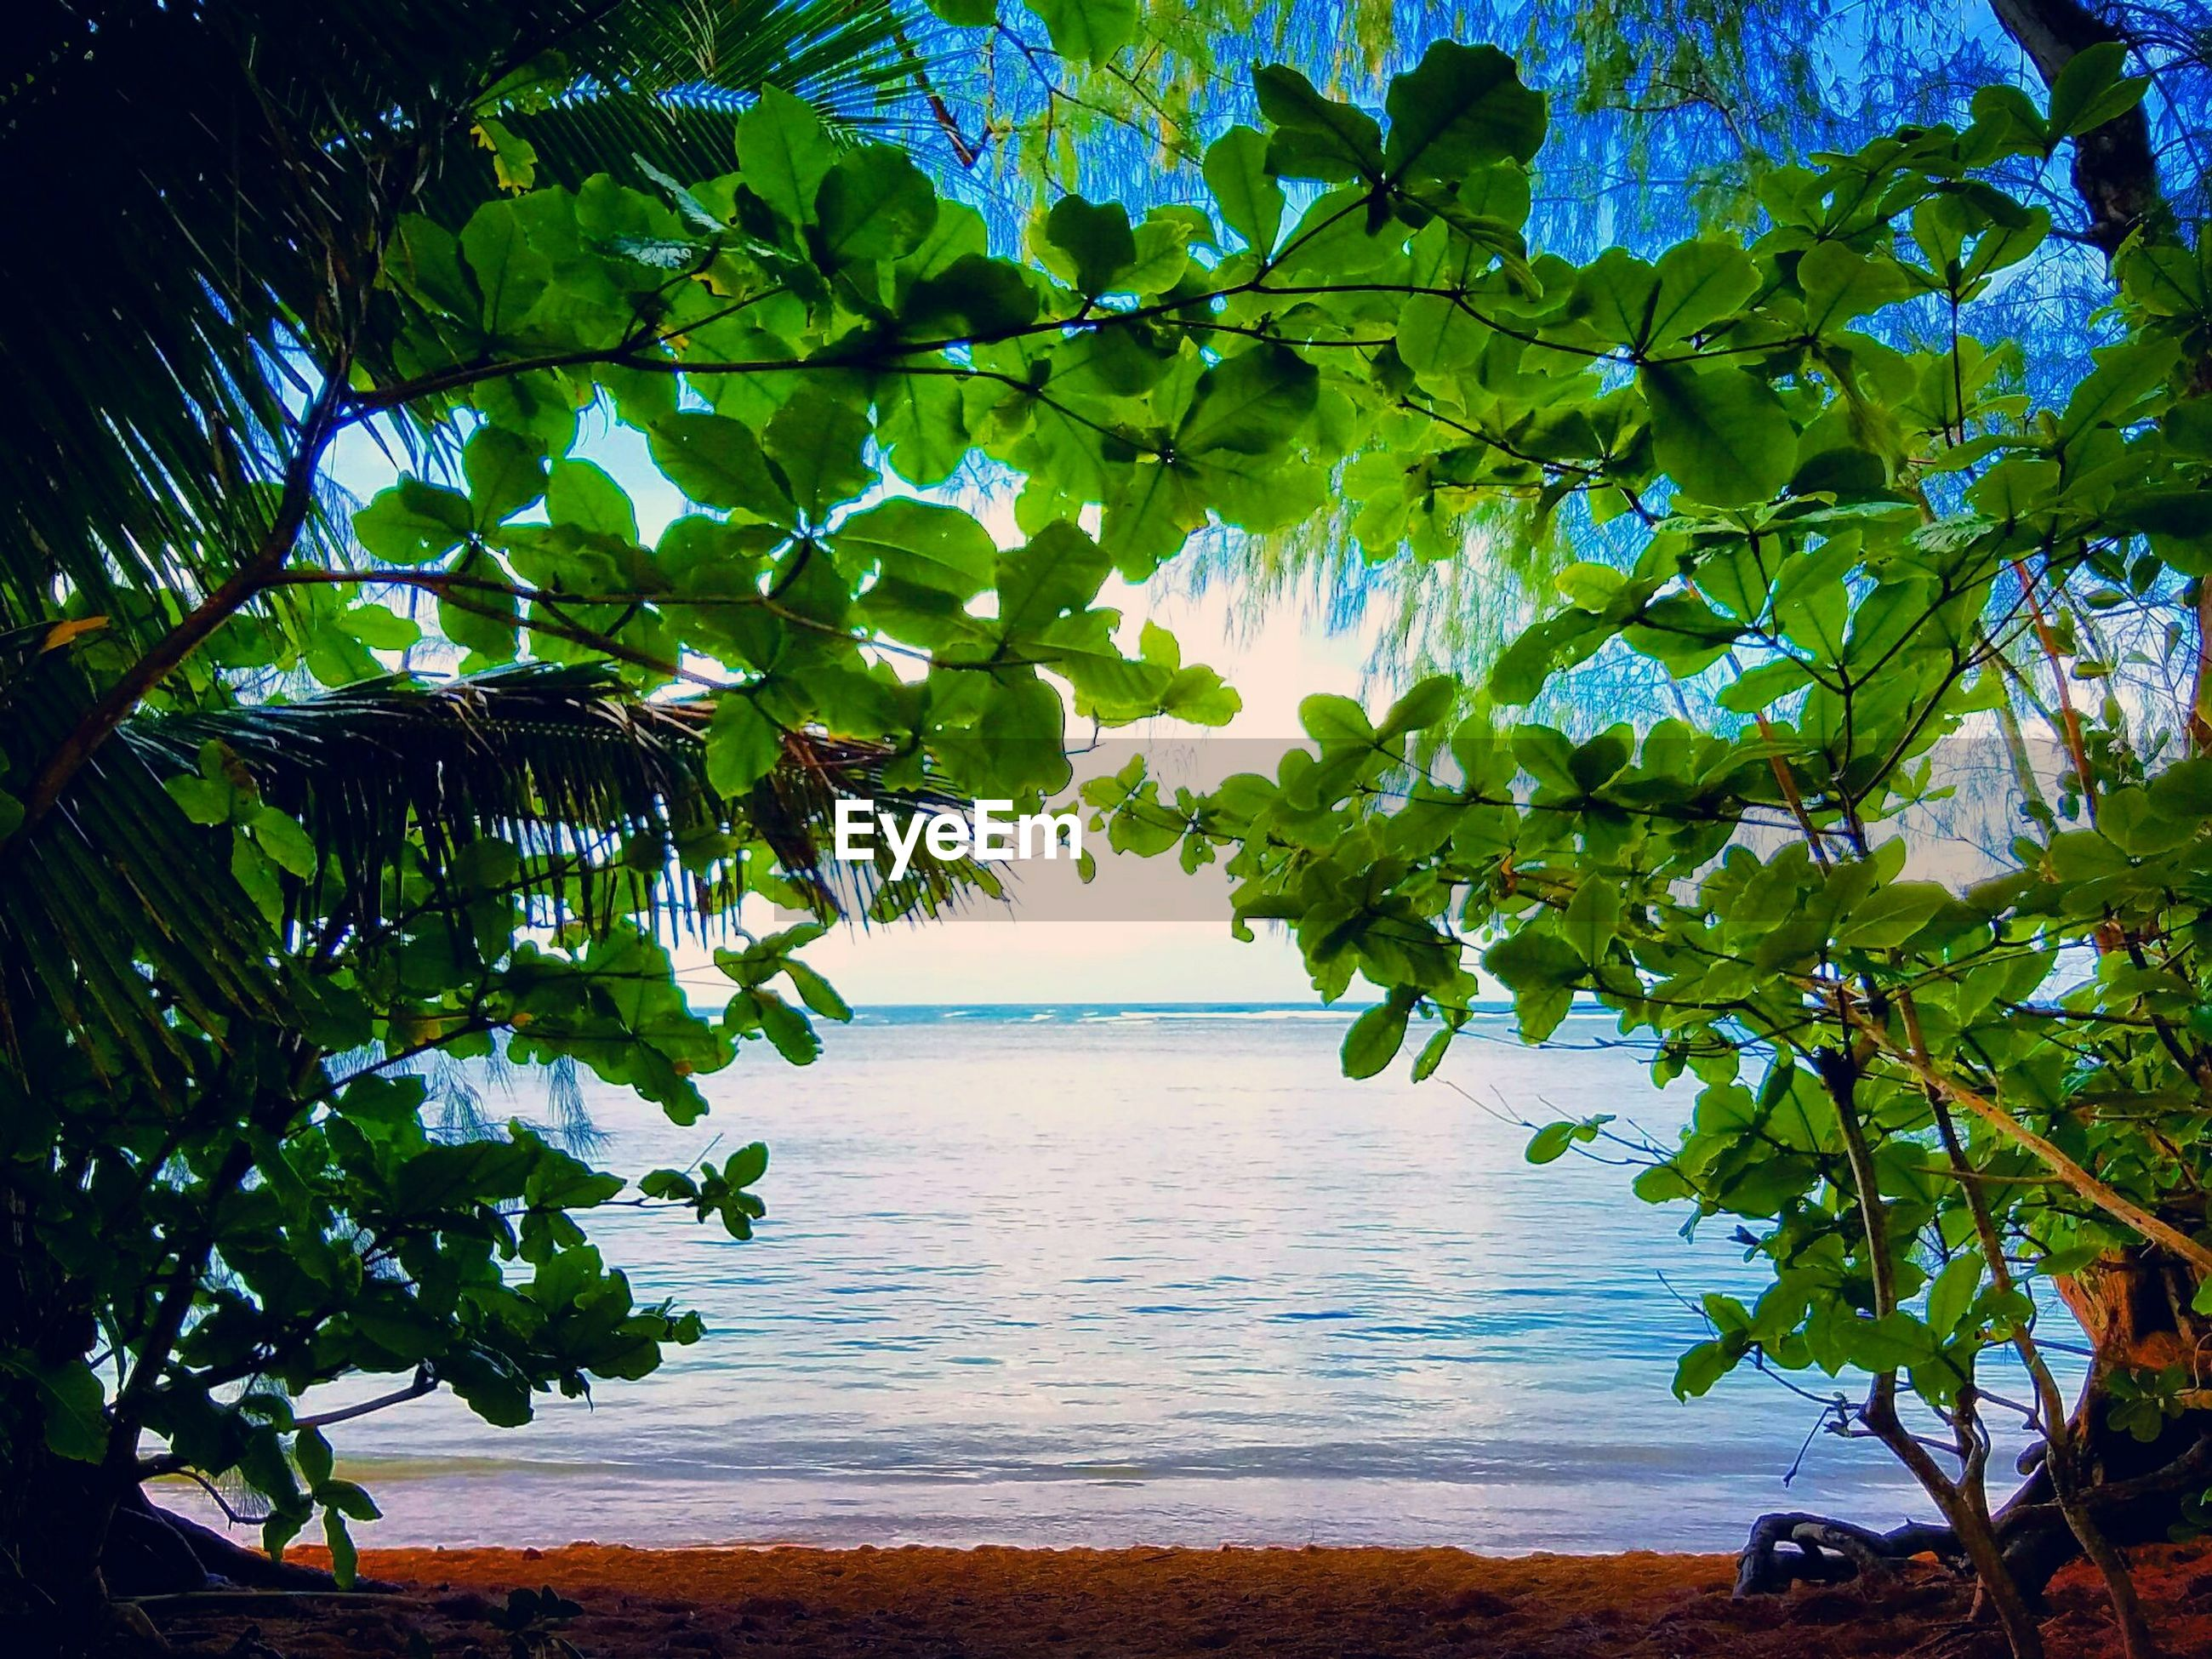 SCENIC VIEW OF TREES BY SEA